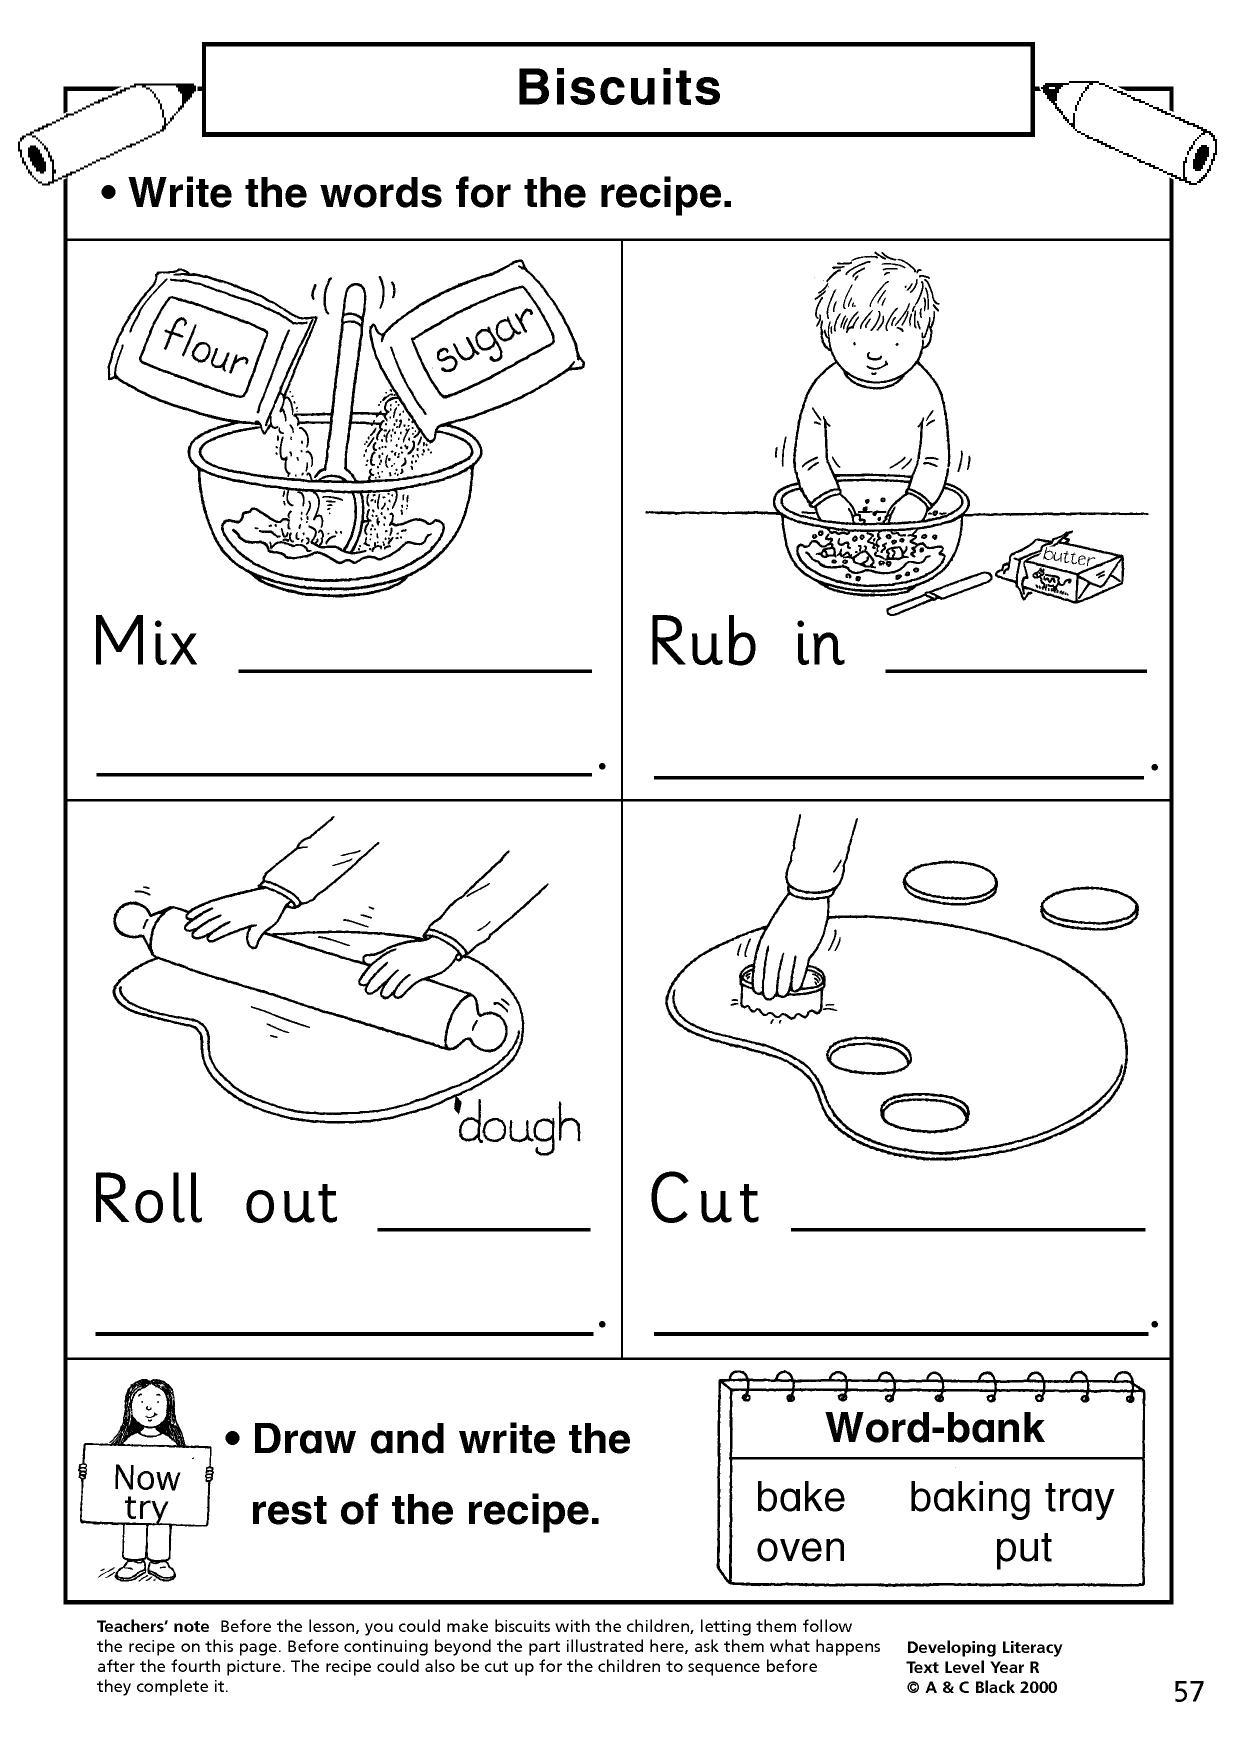 10th Step Worksheet Printable